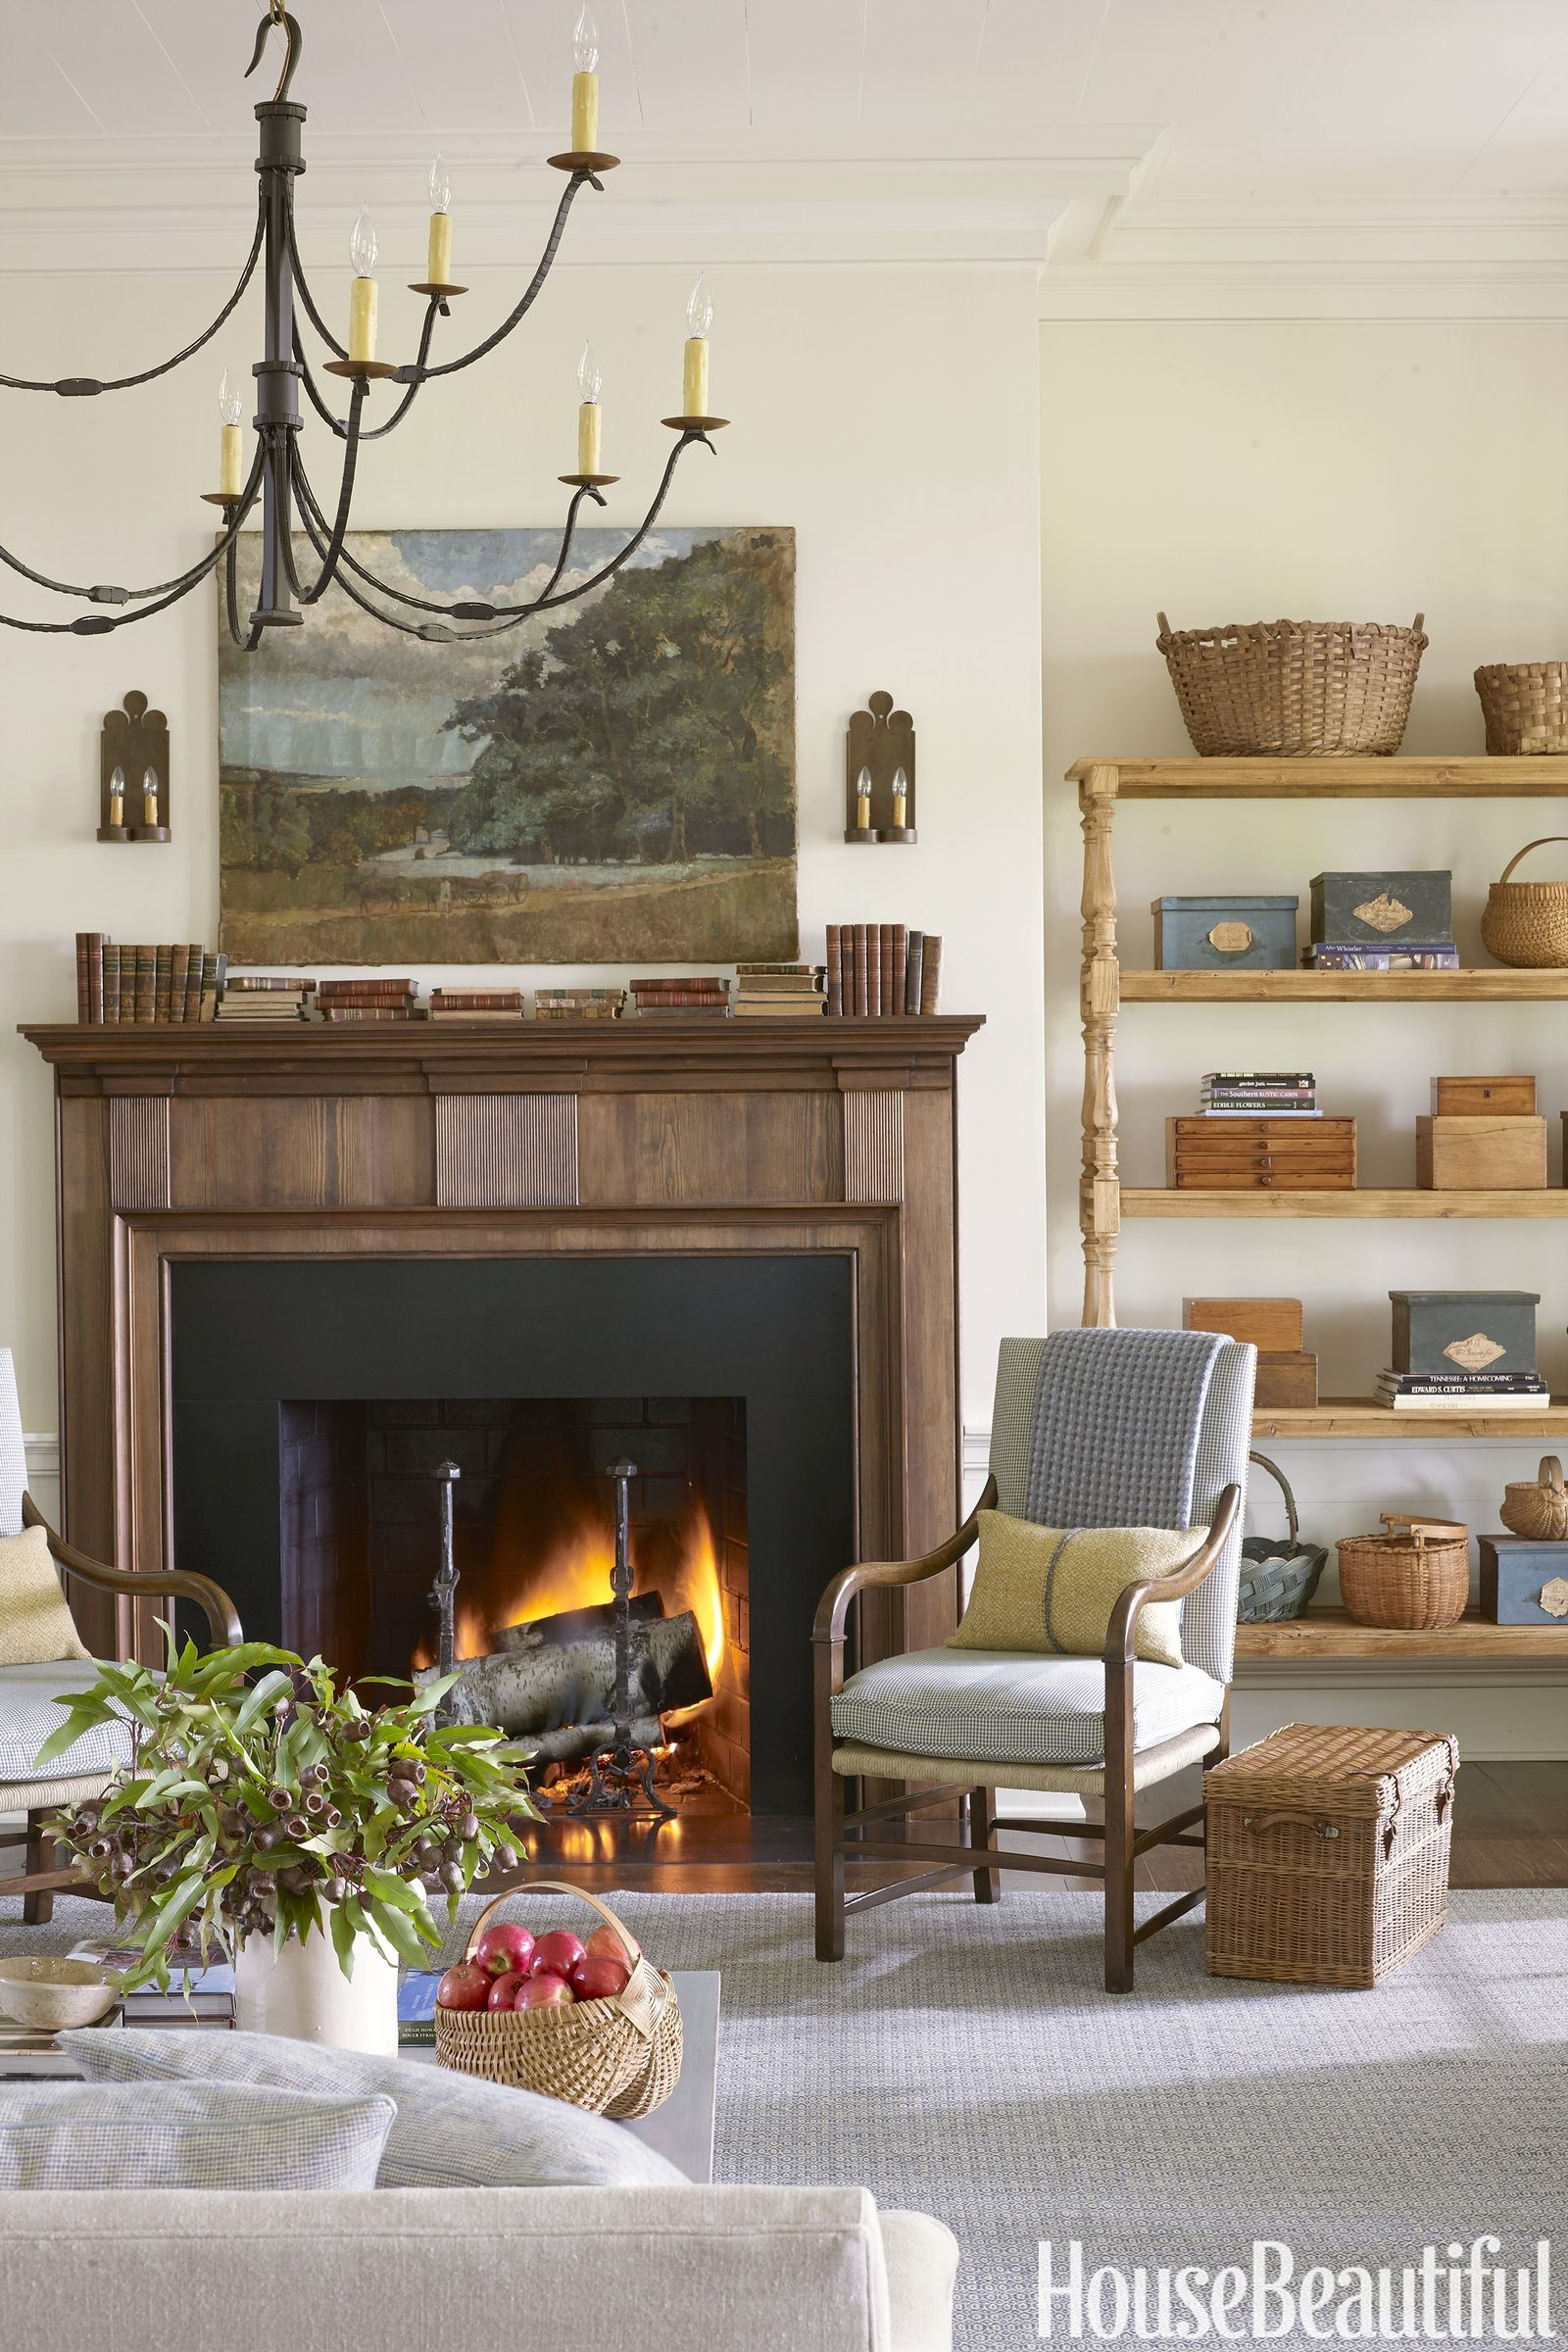 Living Room Designer Mesmerizing This Country Home Is Singlehandedly Making Baskets Cool Again 2018